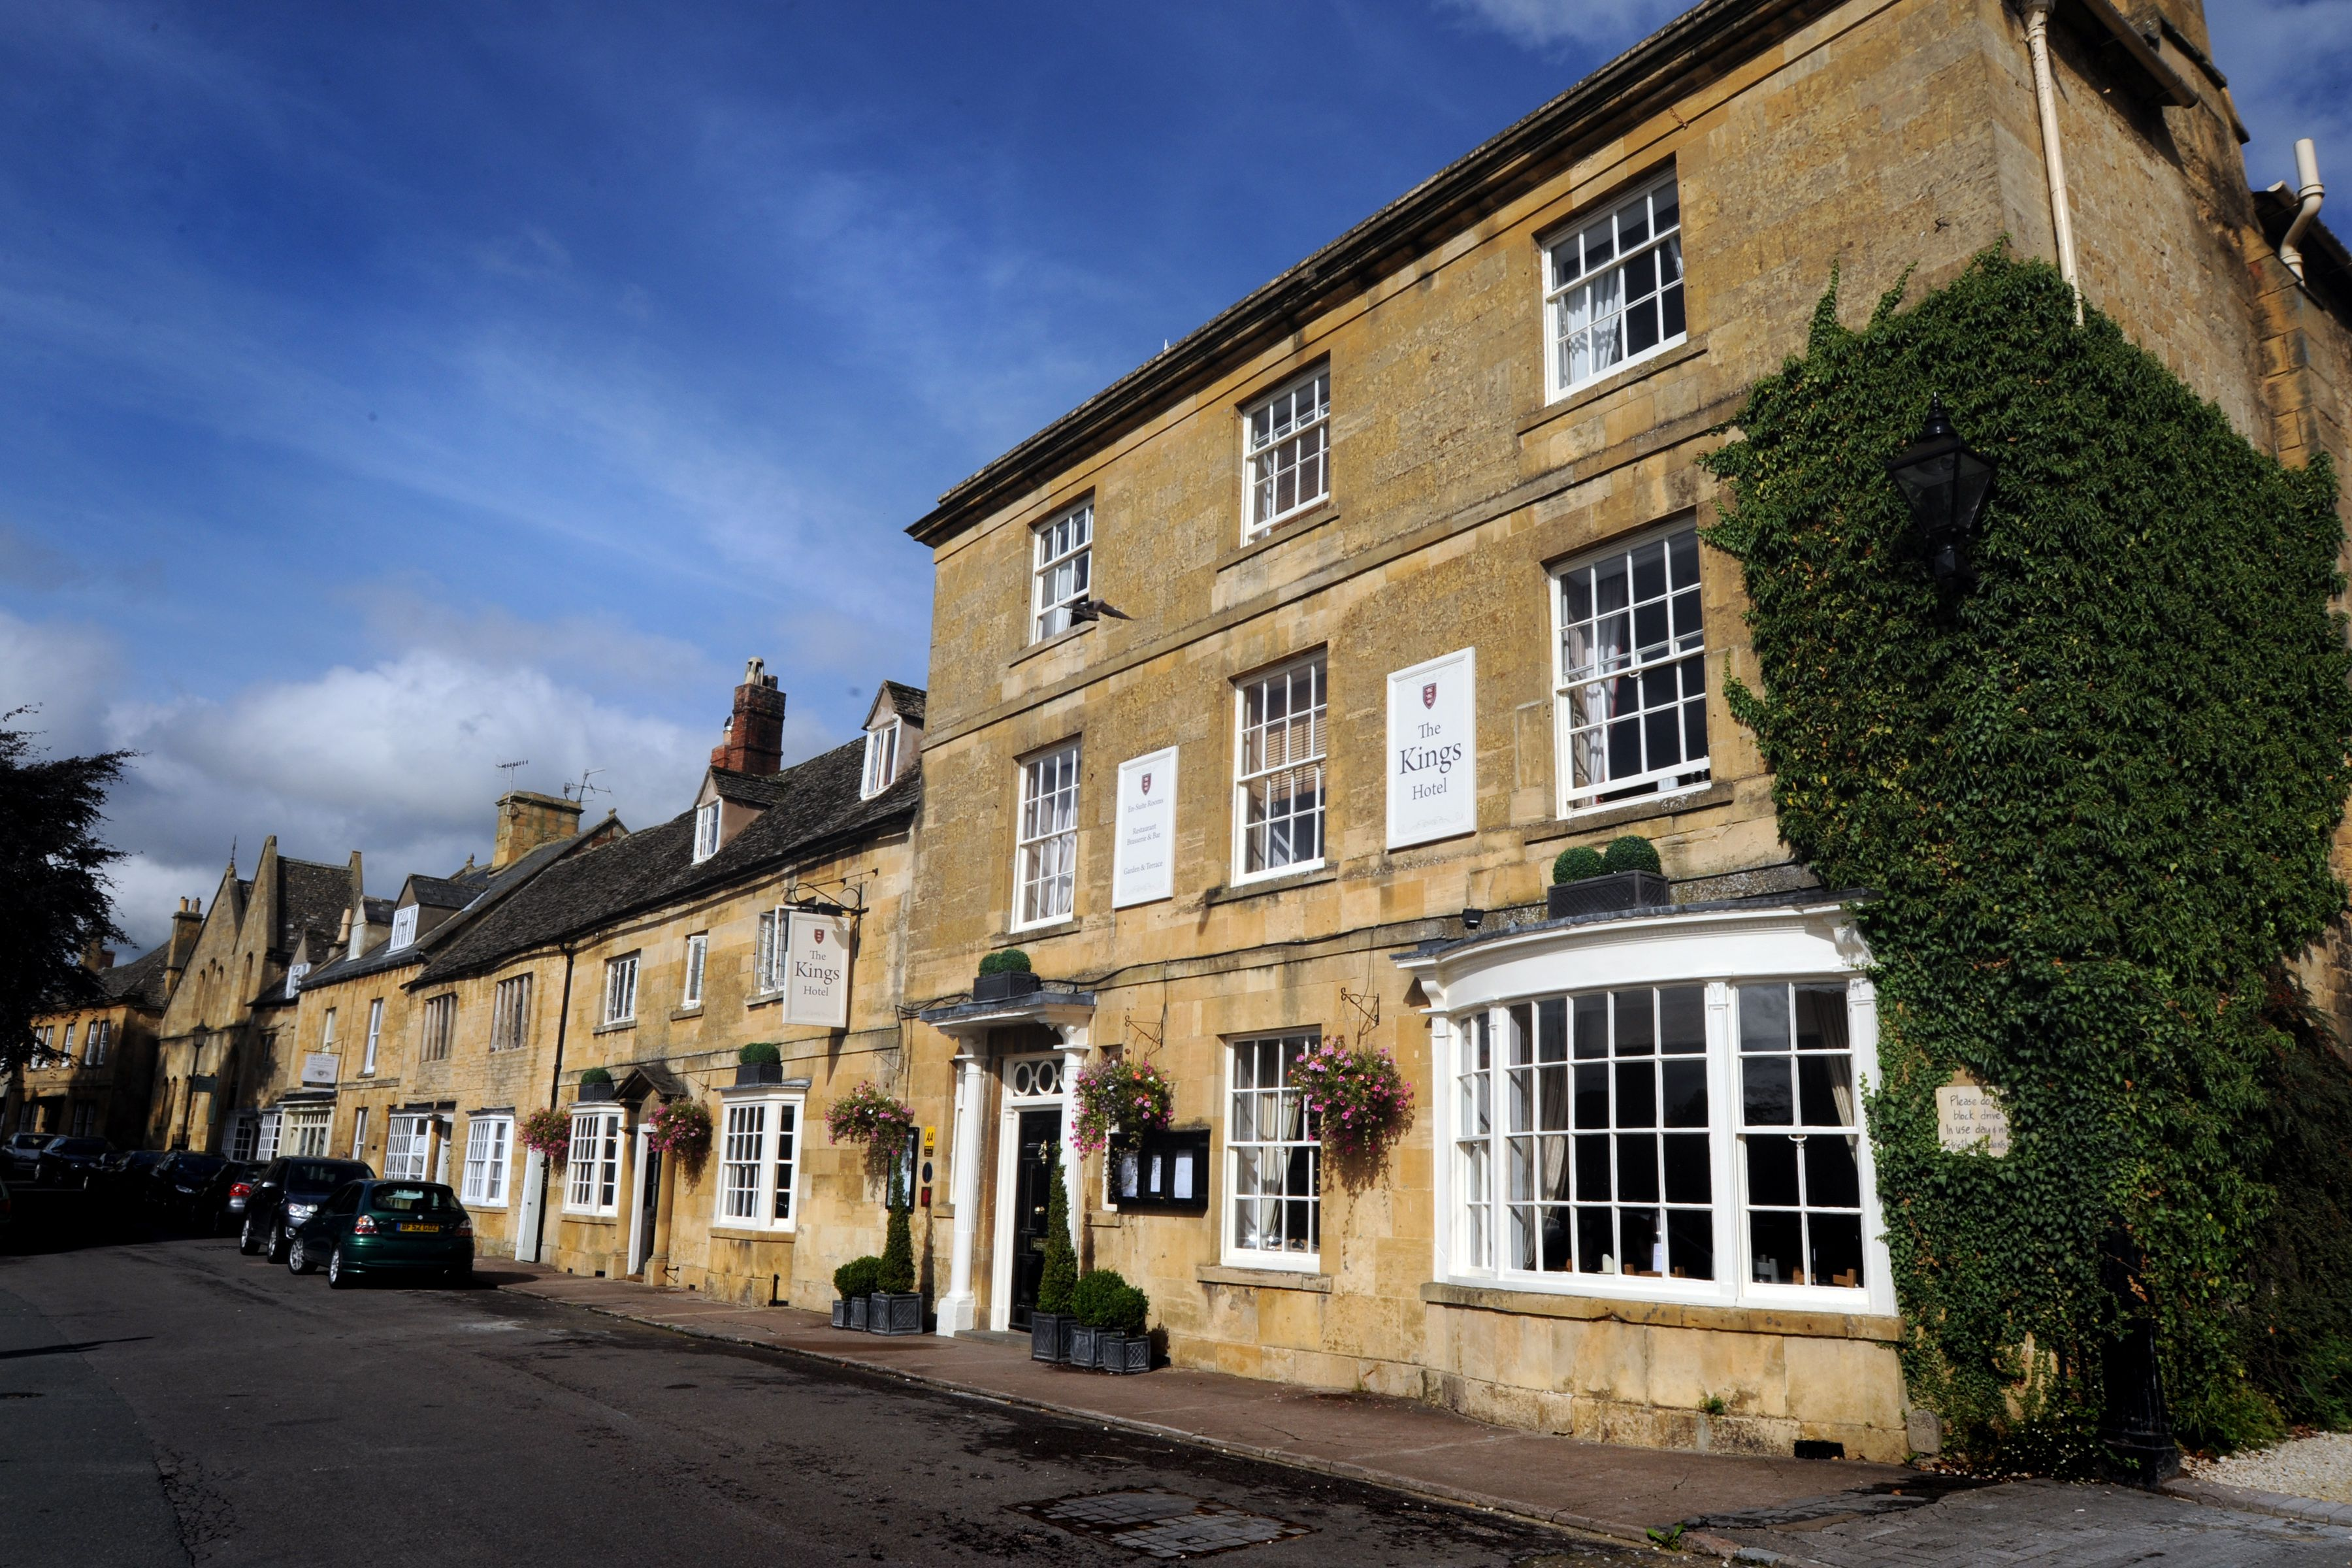 Best hotels in Cotswolds: The Kings, Chipping Campden